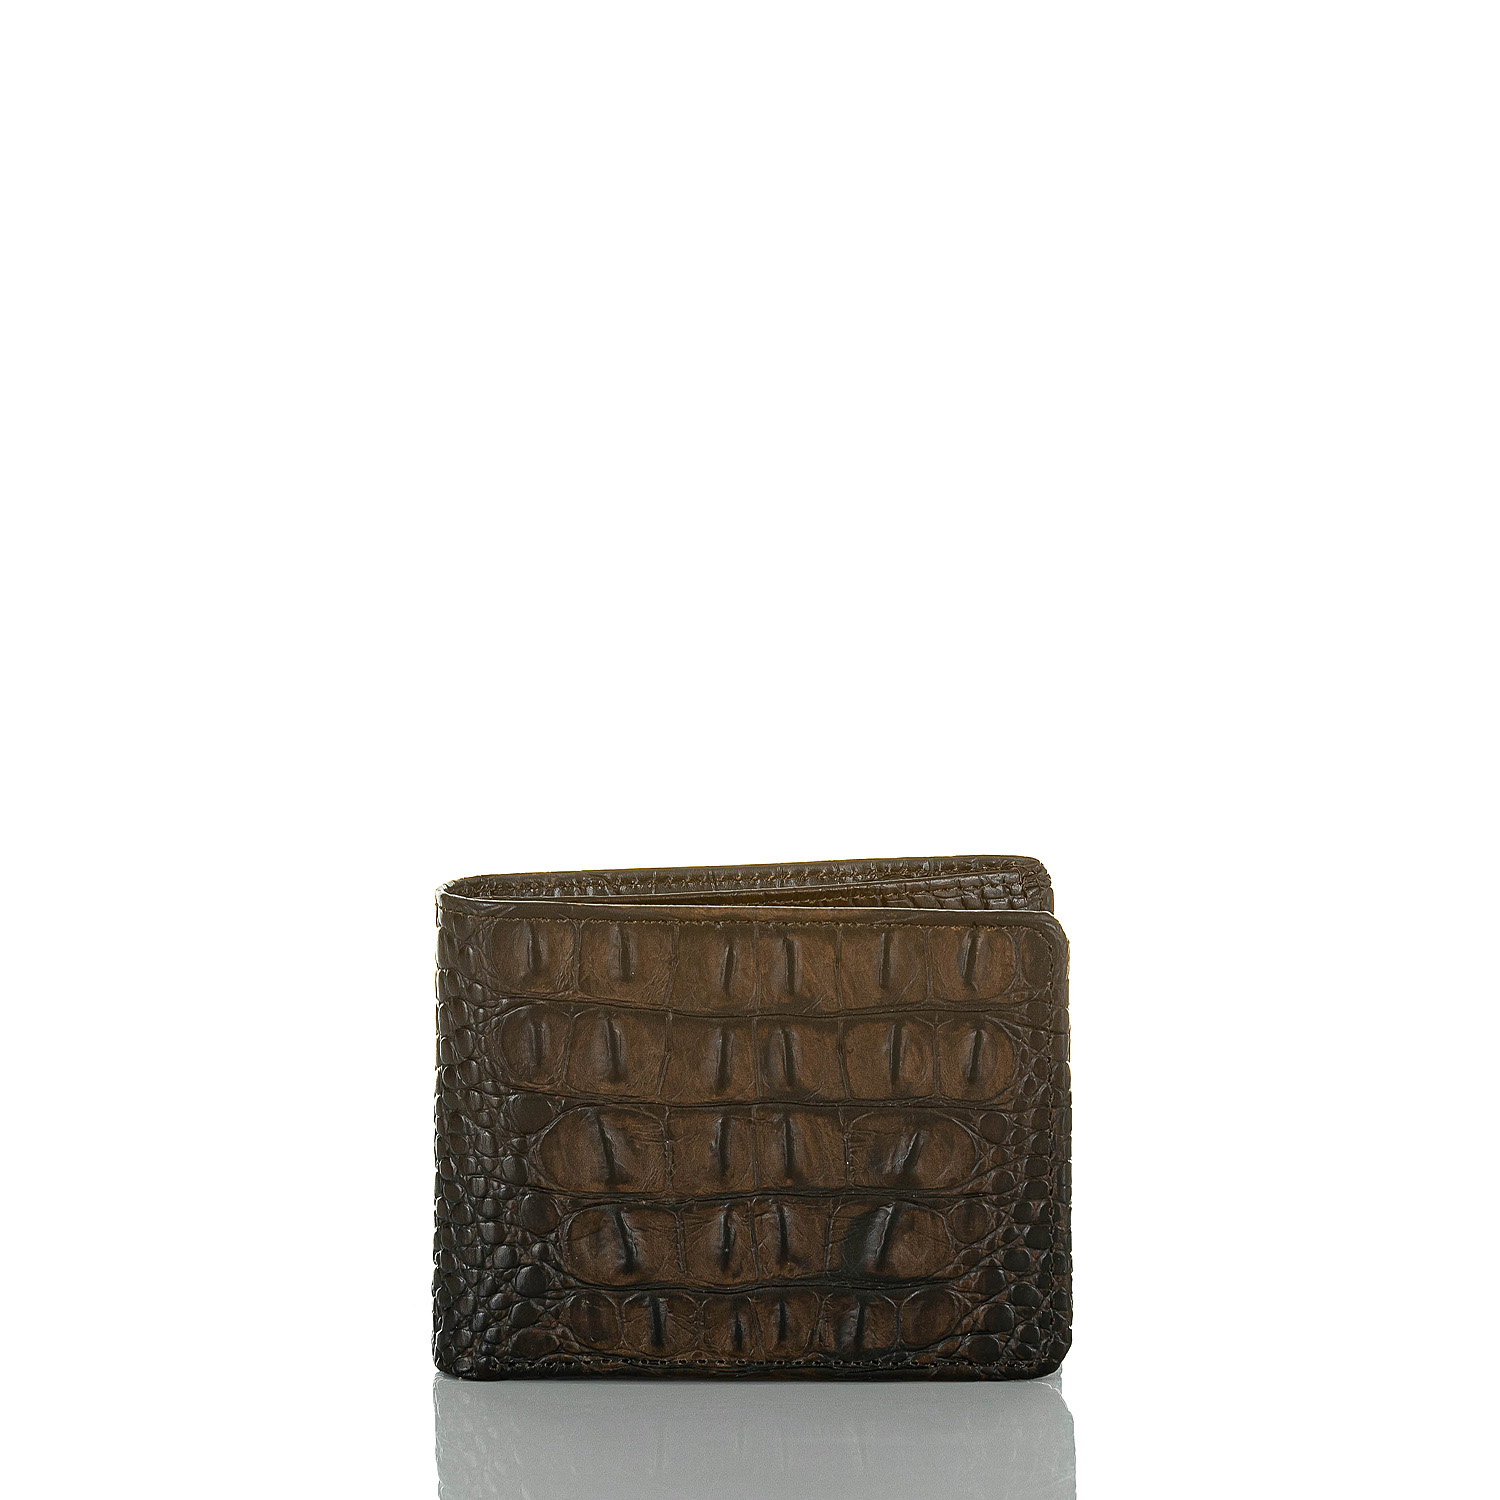 Billfold Cocoa Everglade